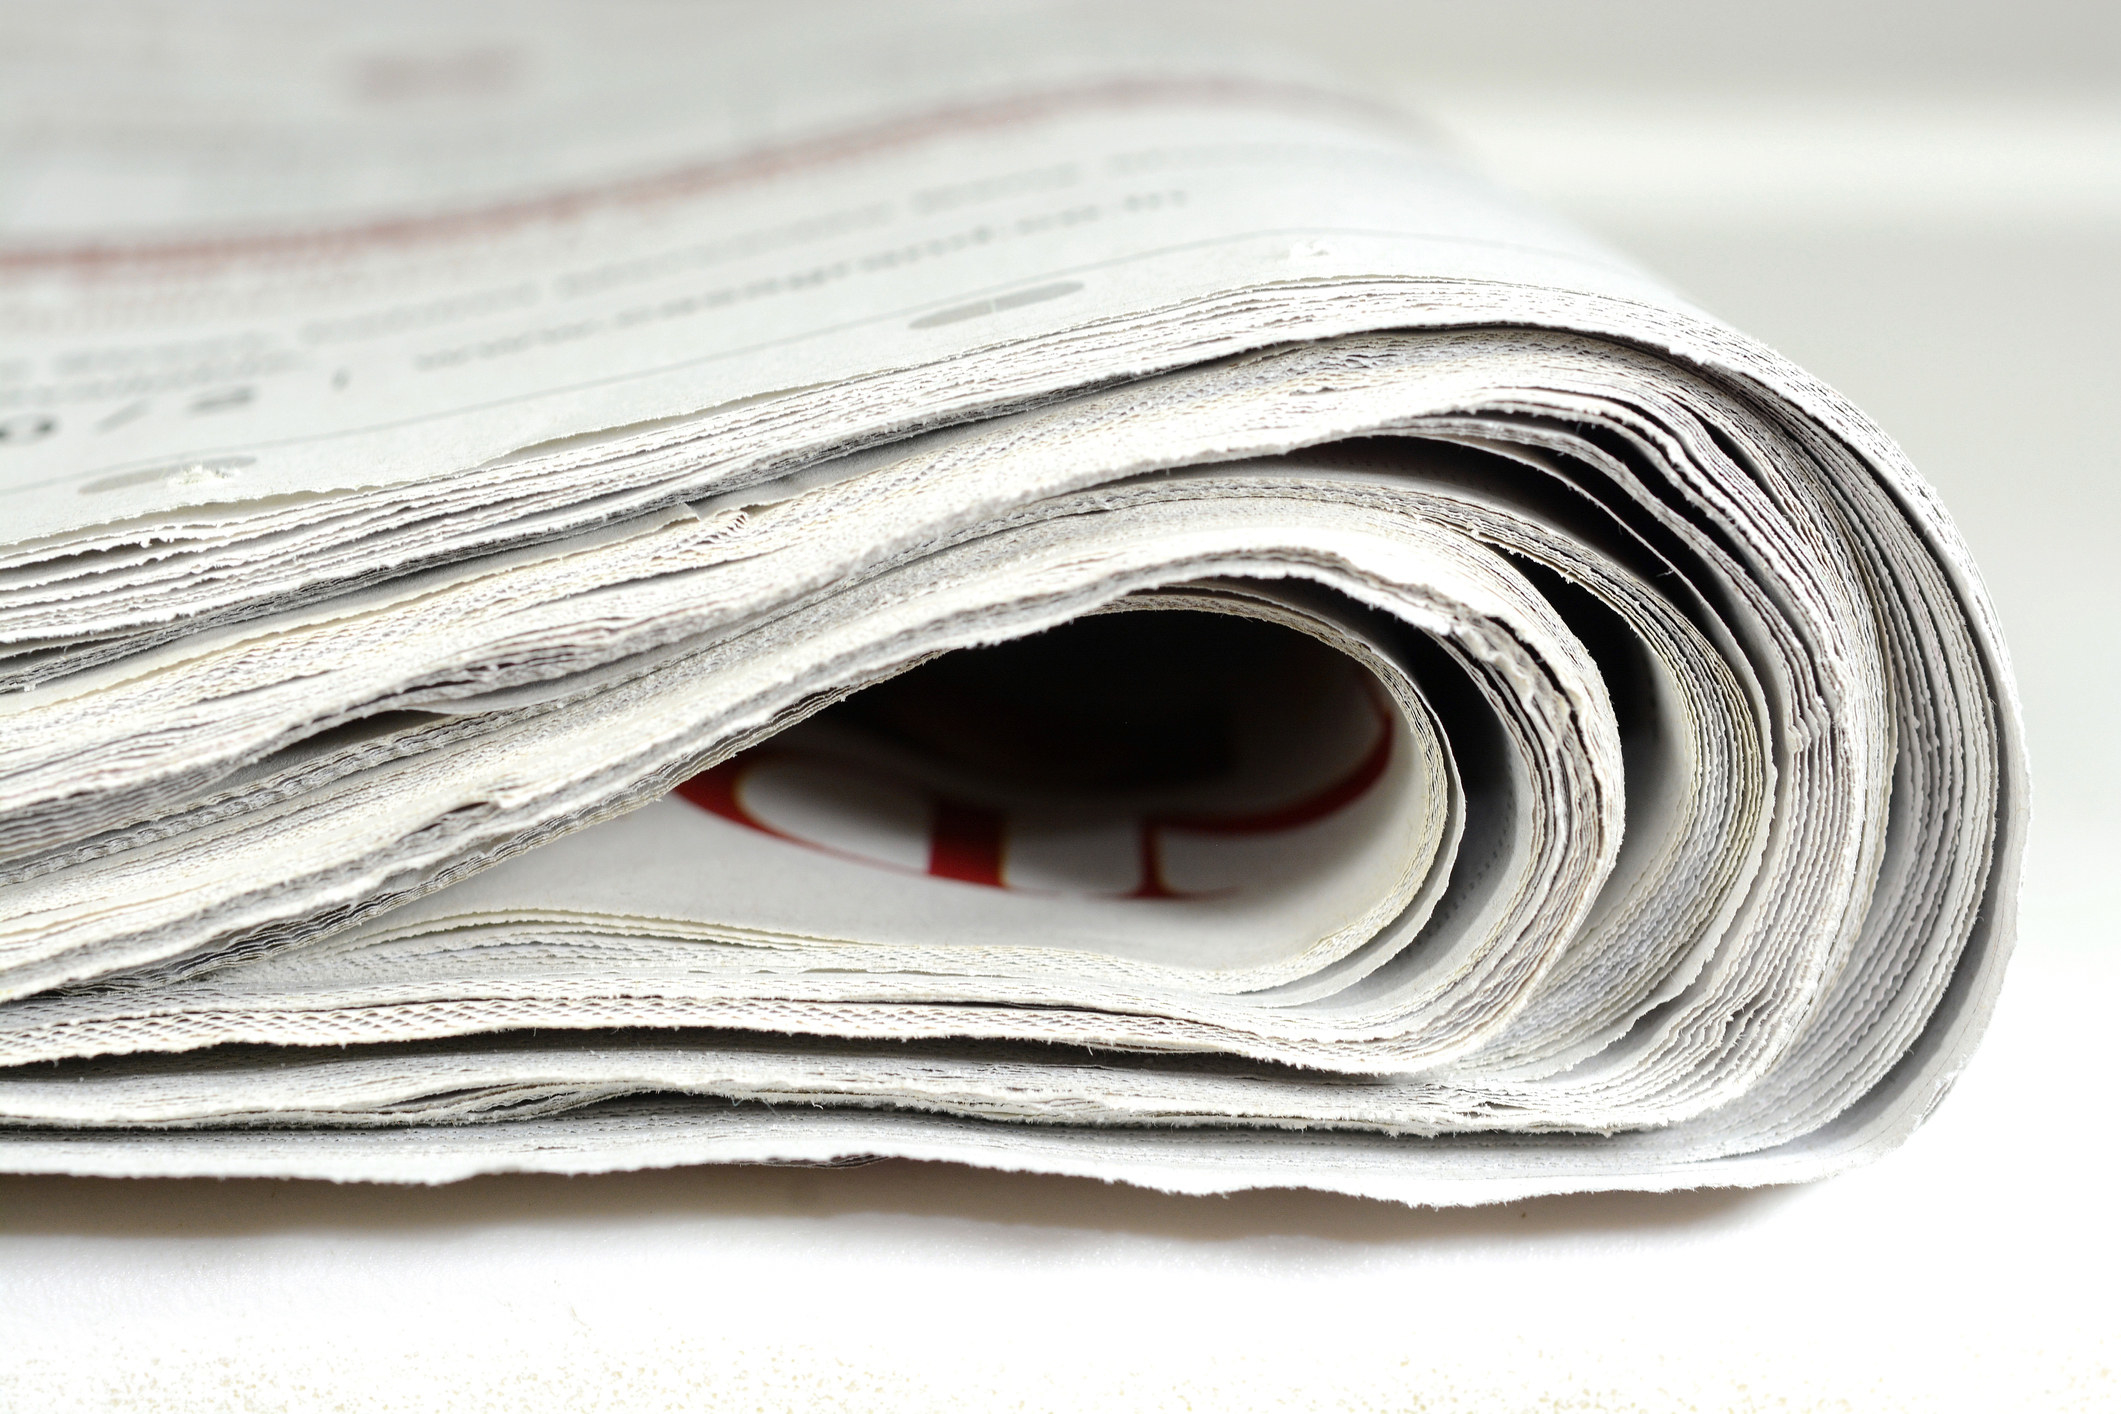 A bunch of newspapers folded together